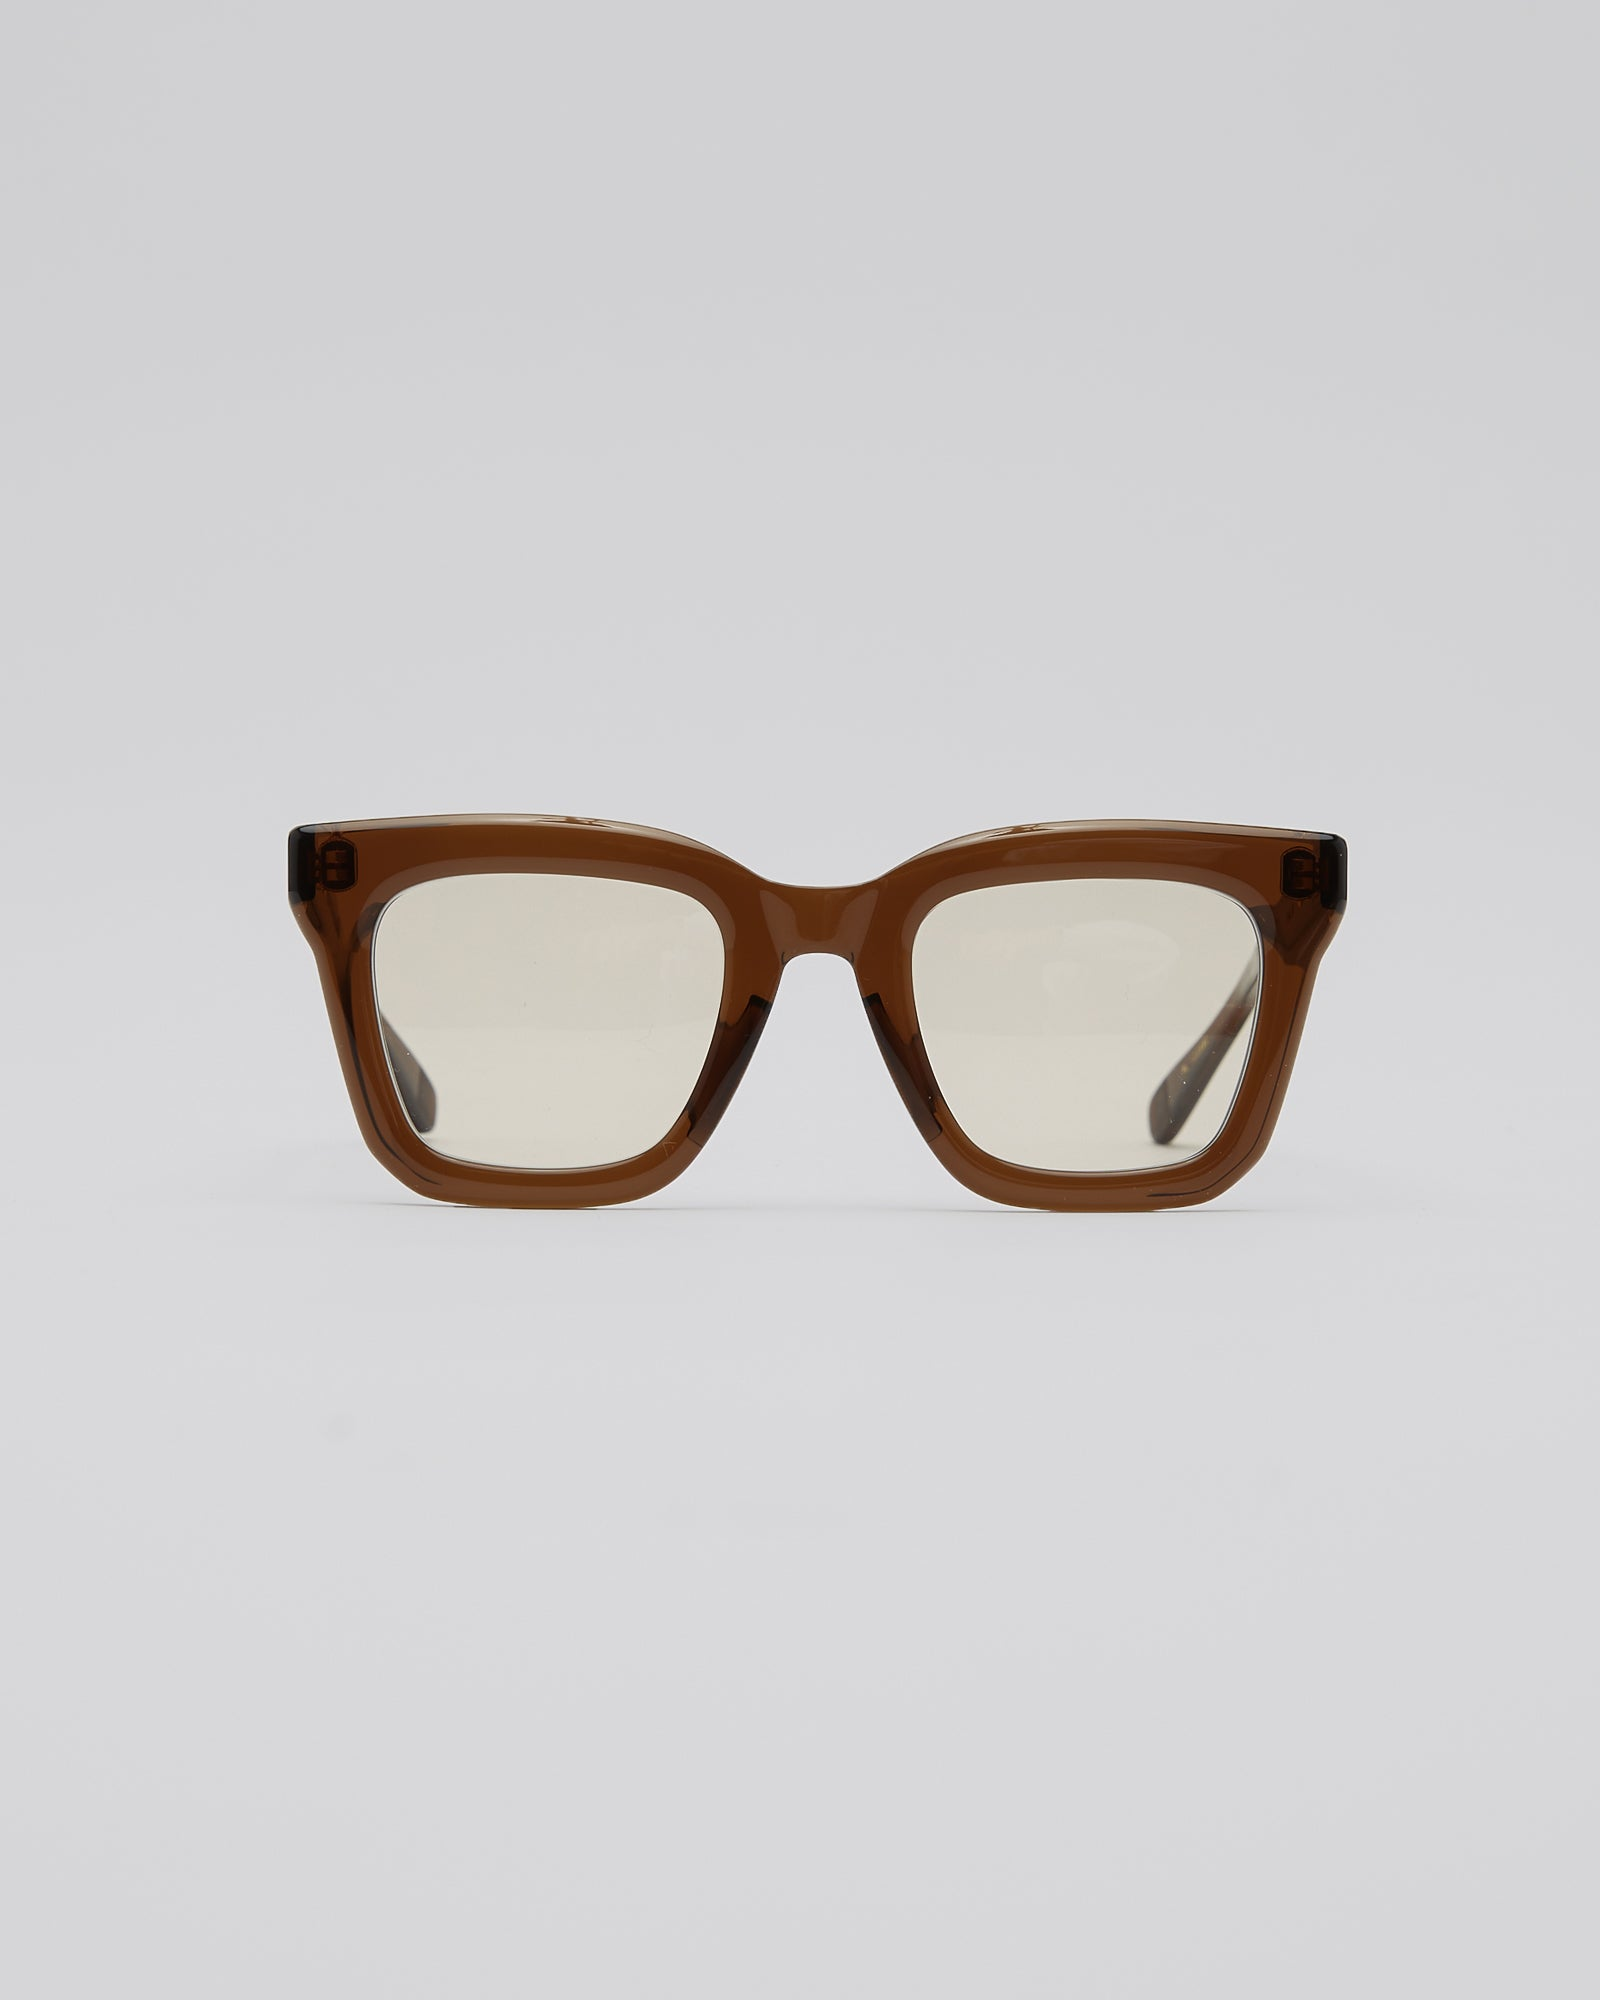 Native Sons x Sacai Cornell in Brown /Clear